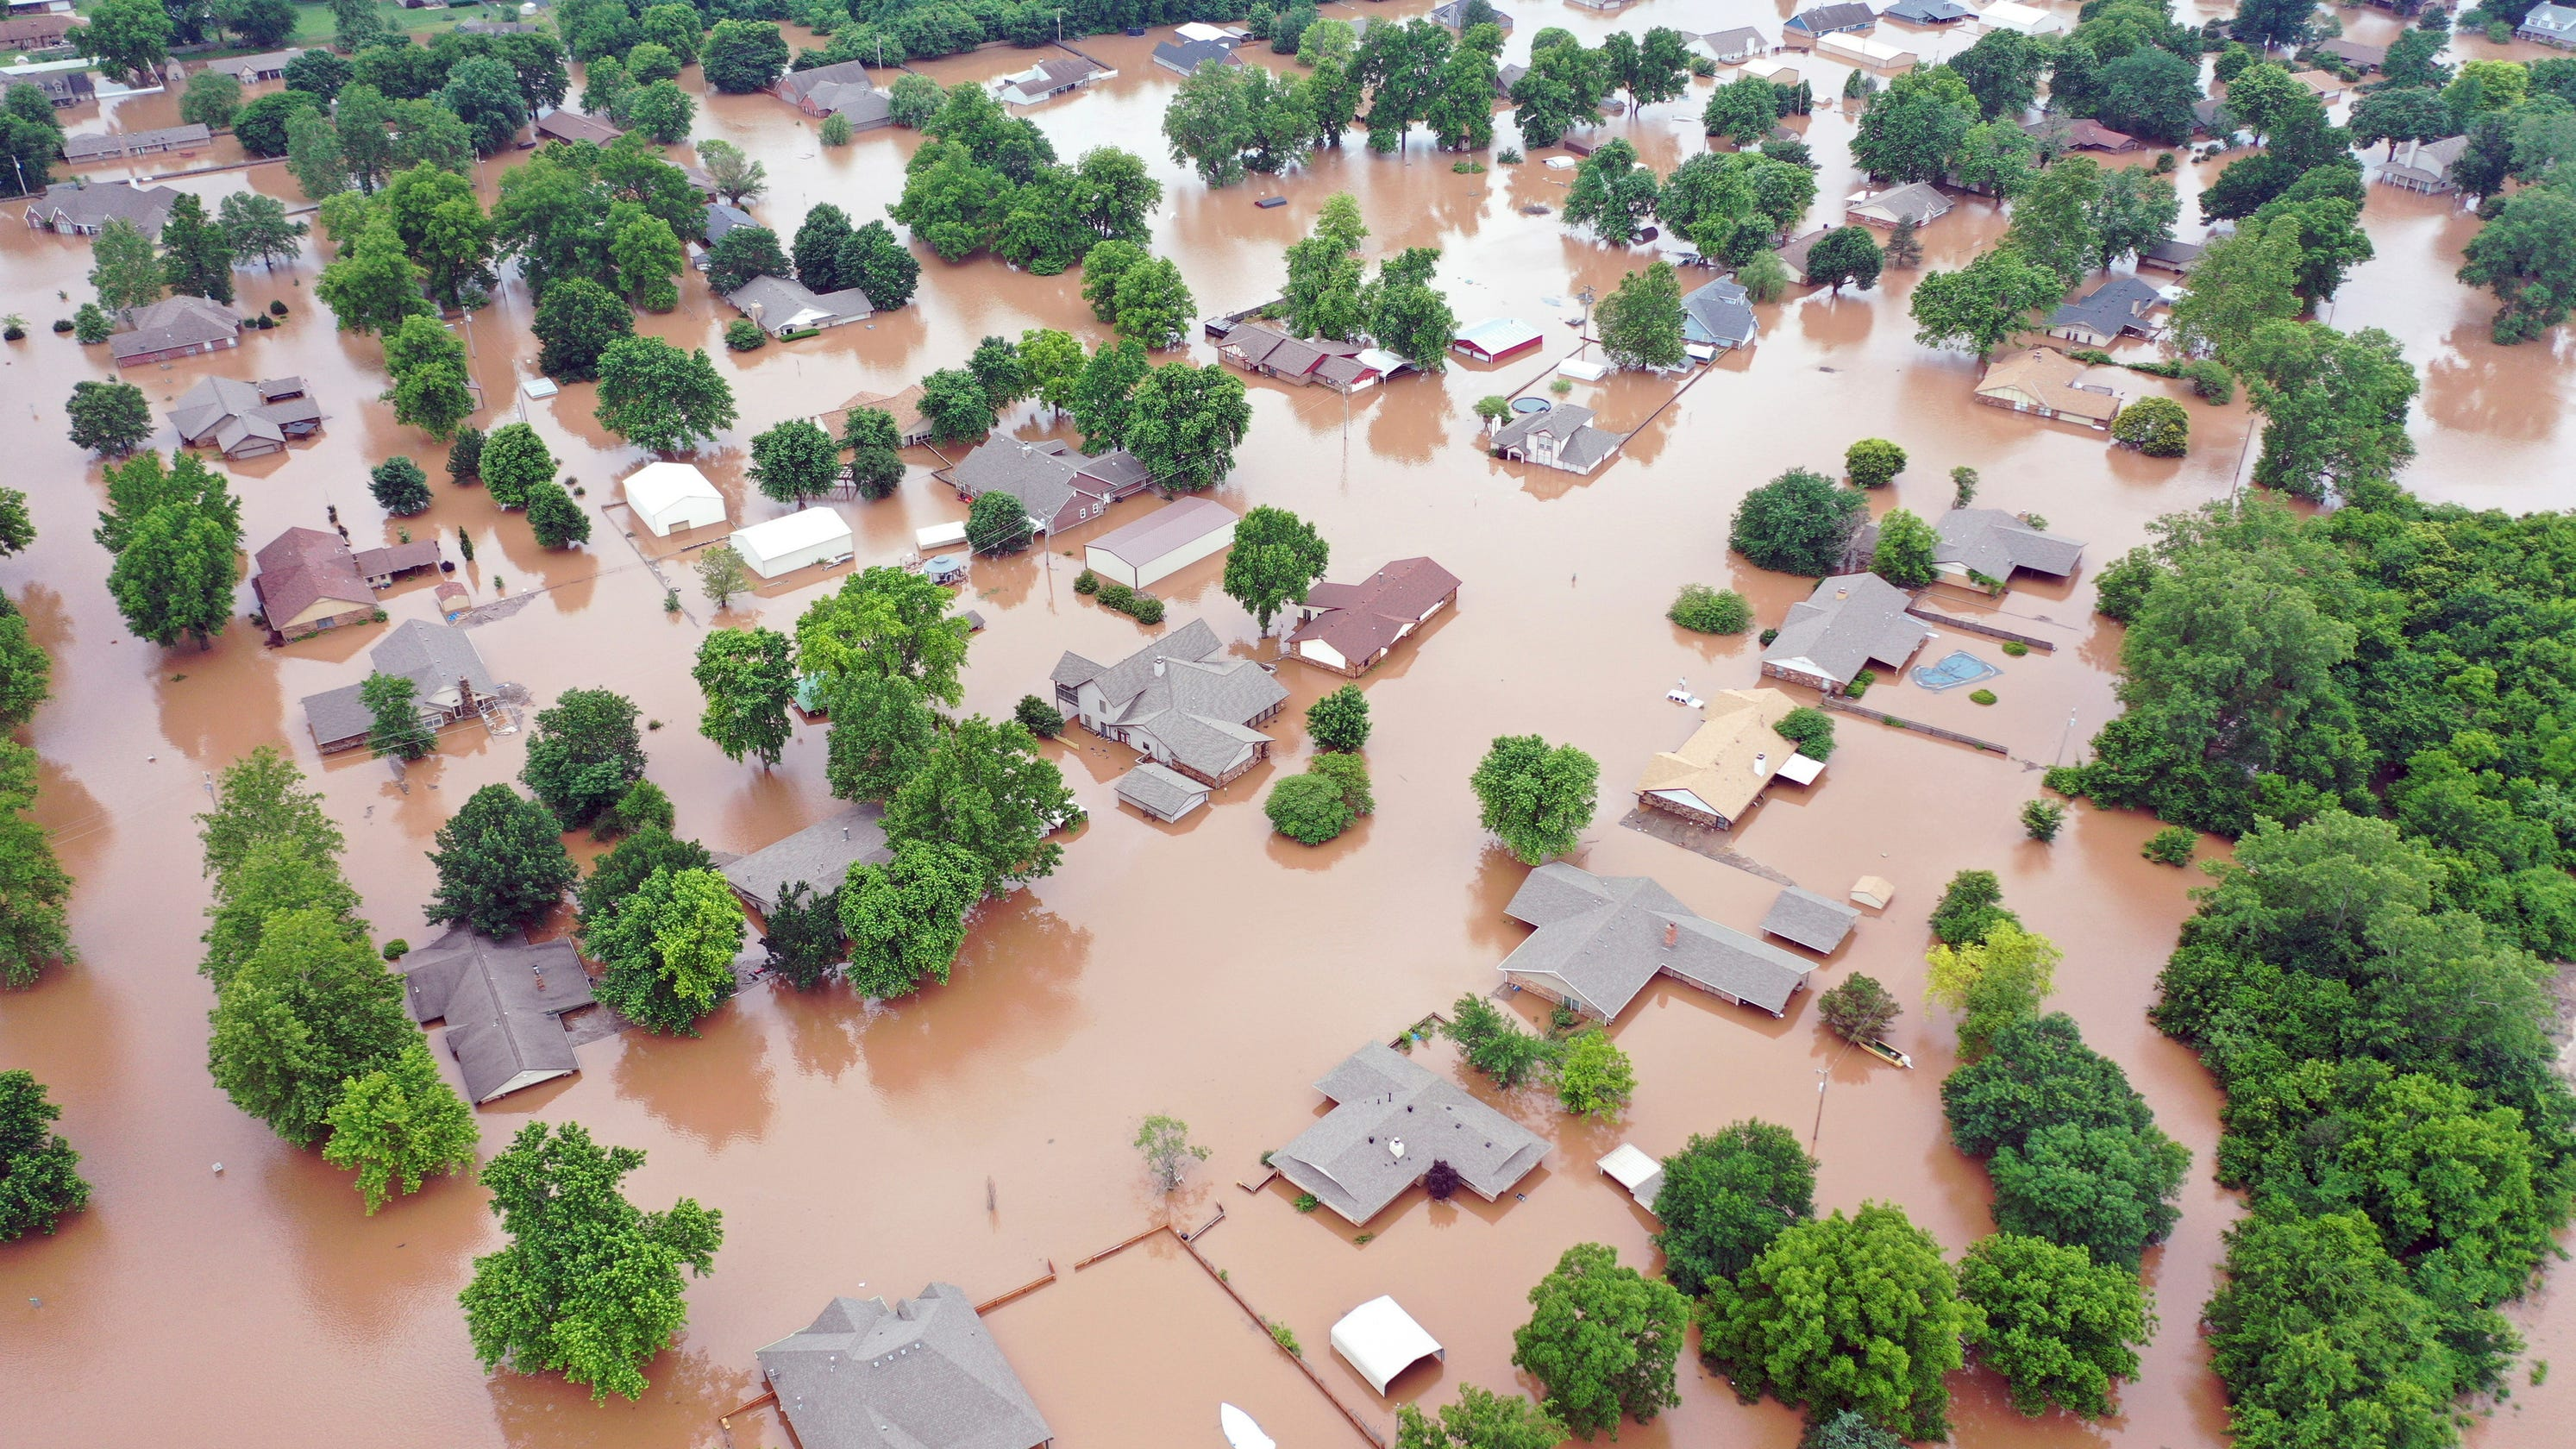 The Latest: Private lake dam in Oklahoma City endangered ... |Oklahoma Flooding